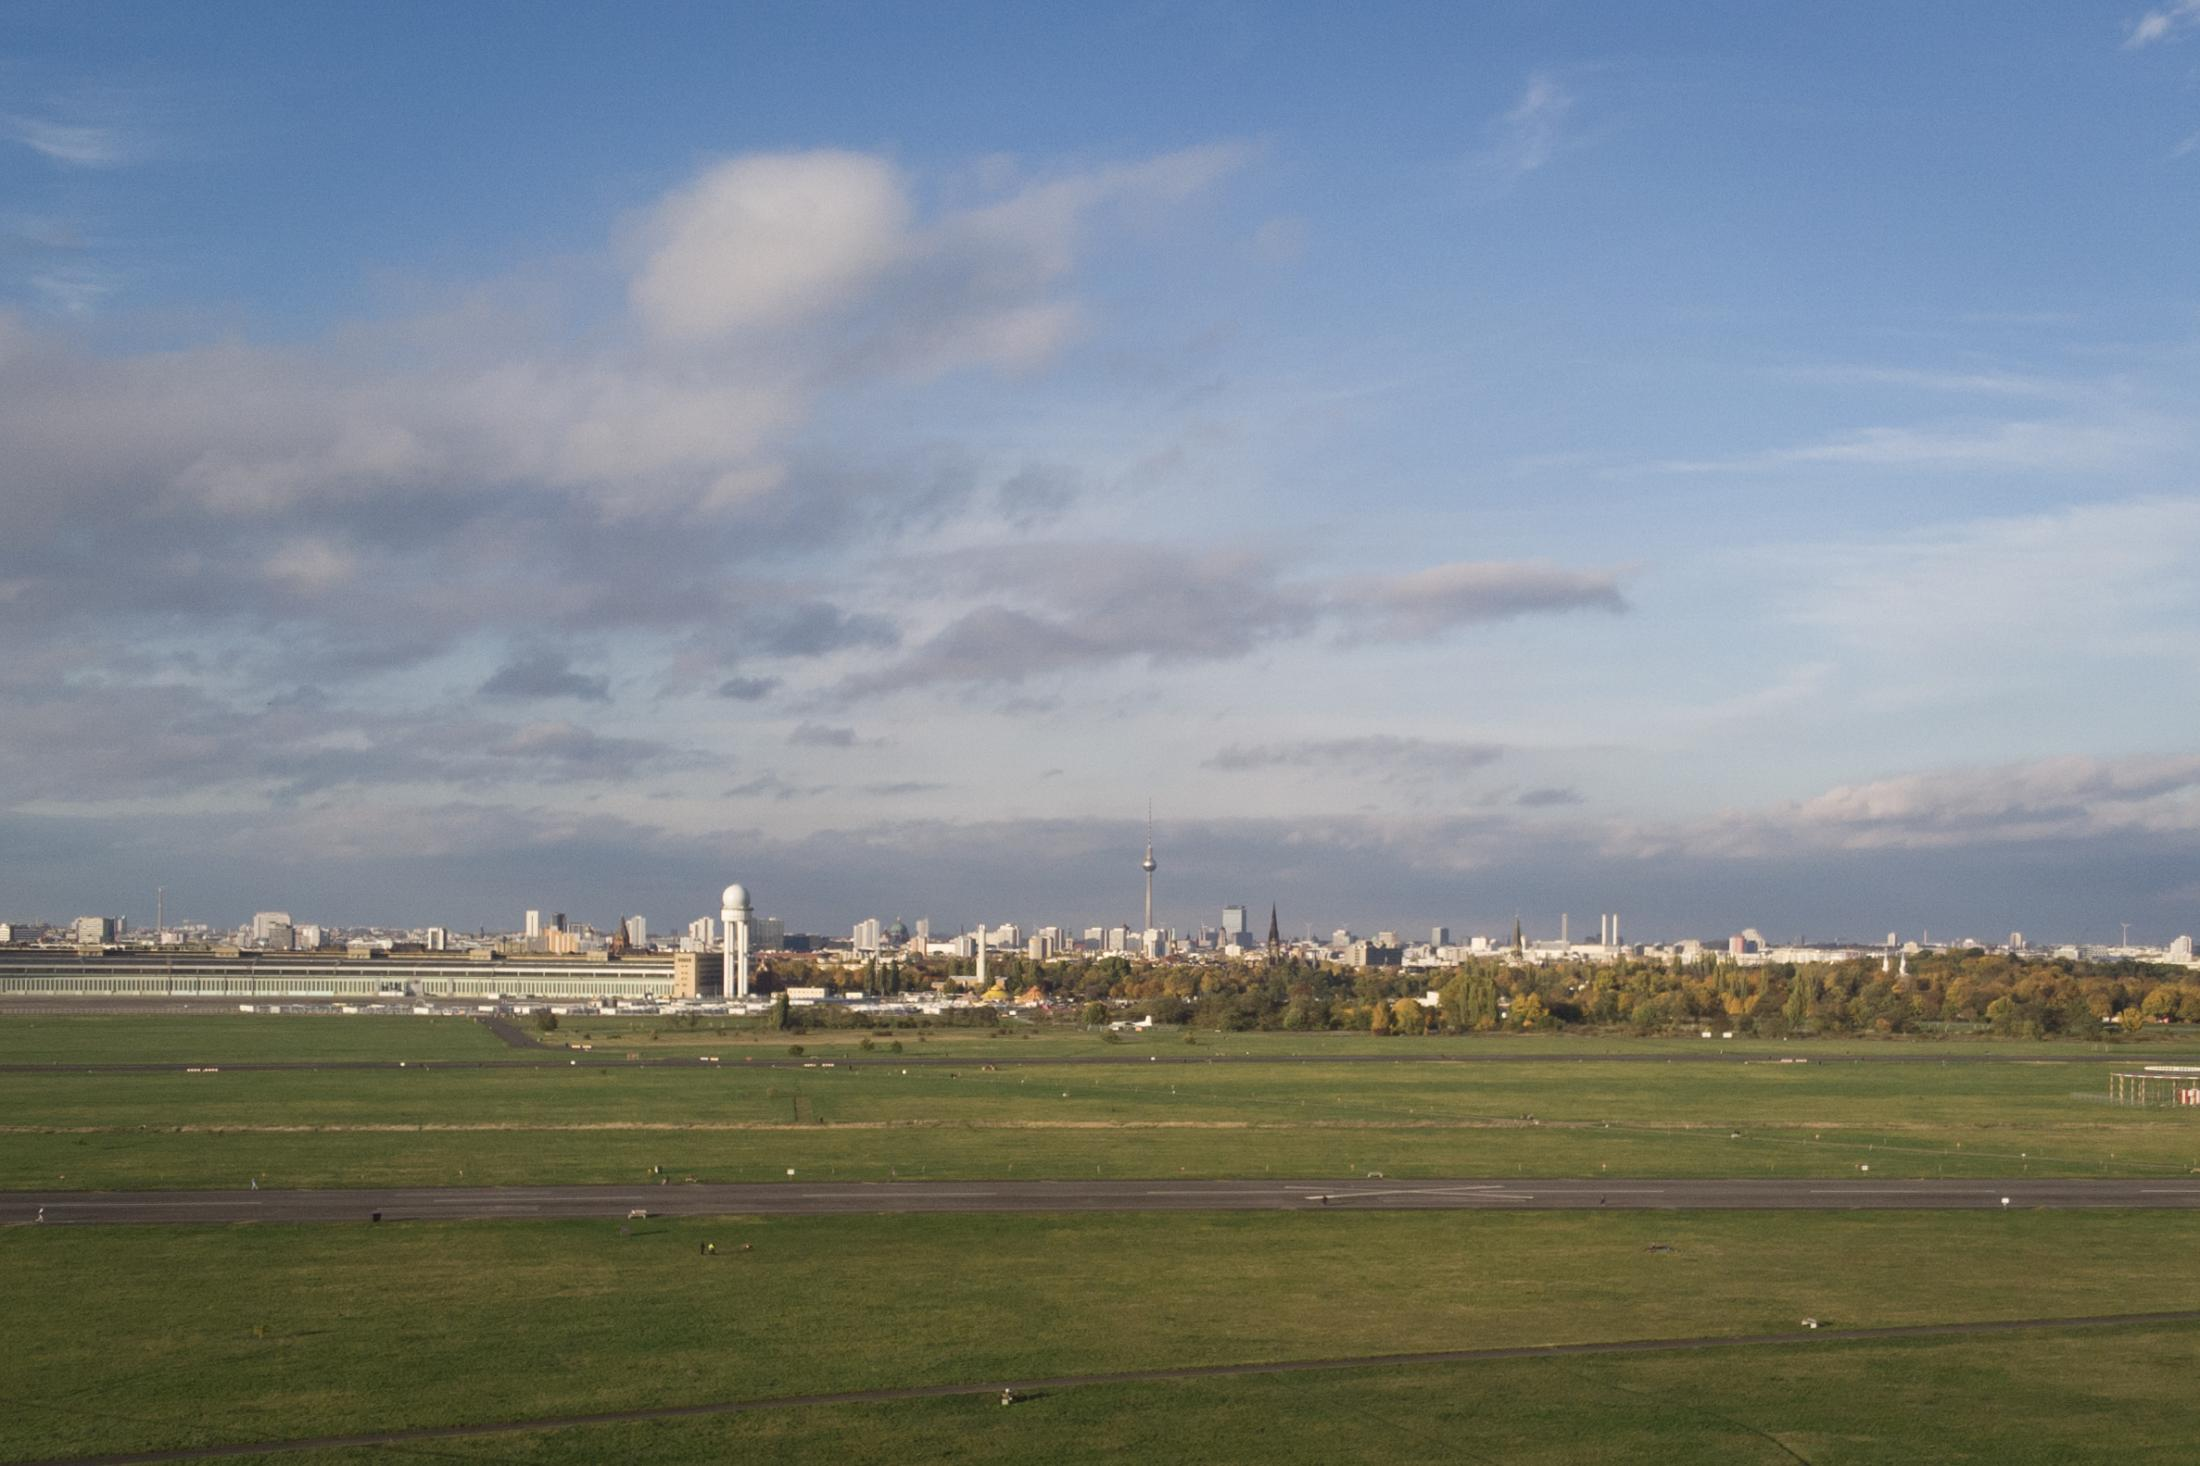 """Berlin is seen from above the former Tempelhof Airport (THF), which closed in 2008. The airfield now used for recreational purposes will be joined in retirement by that of Tegel Airport (TXL), which is due to shut down on November 8. A third airfield, that of Berlin's Schönefeld Airport (SXF), will be included in the new airport """"Berlin Brandenburg Willy Brandt"""" (BER), which finally opens this coming Saturday and which will be Berlin's only airport for the first time since 1934. Taken with a drone, October 28, 2020."""